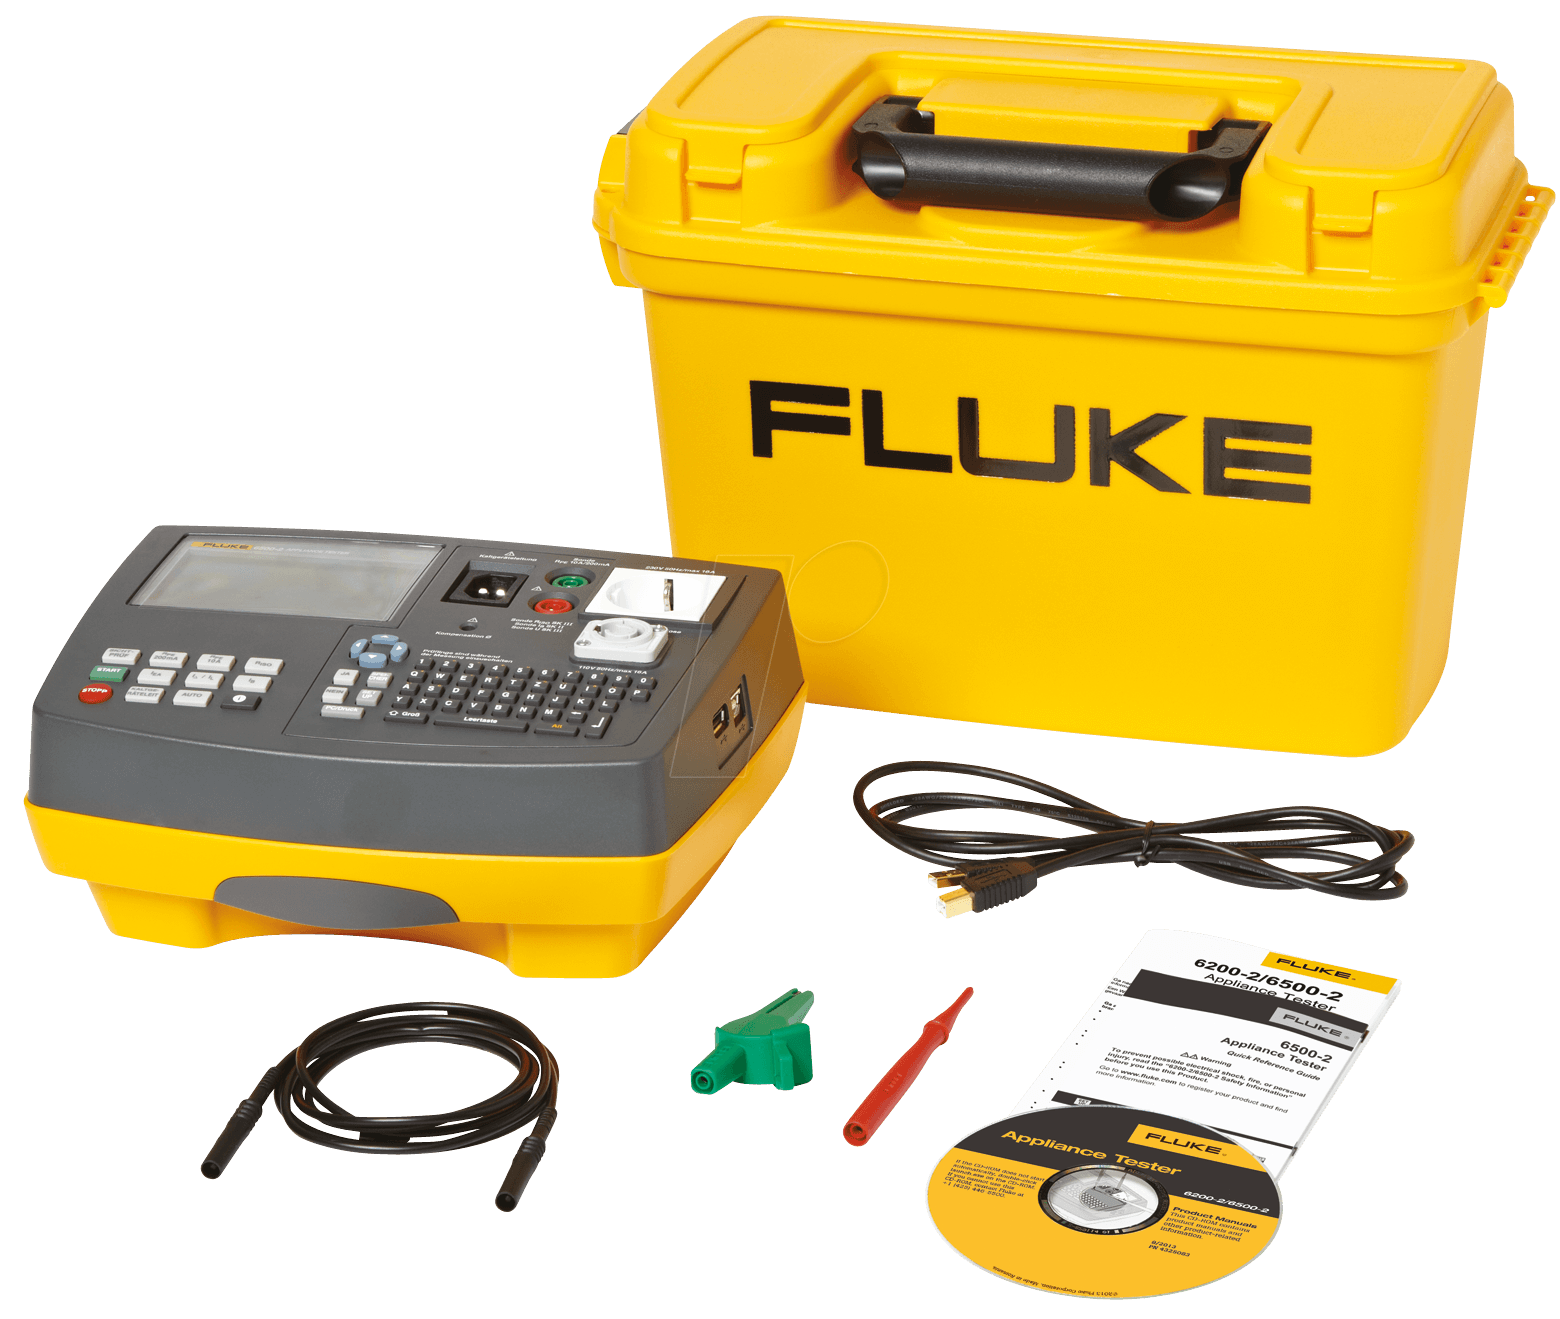 Fluke Test Instruments : Fluke test device for appliances and equipment at